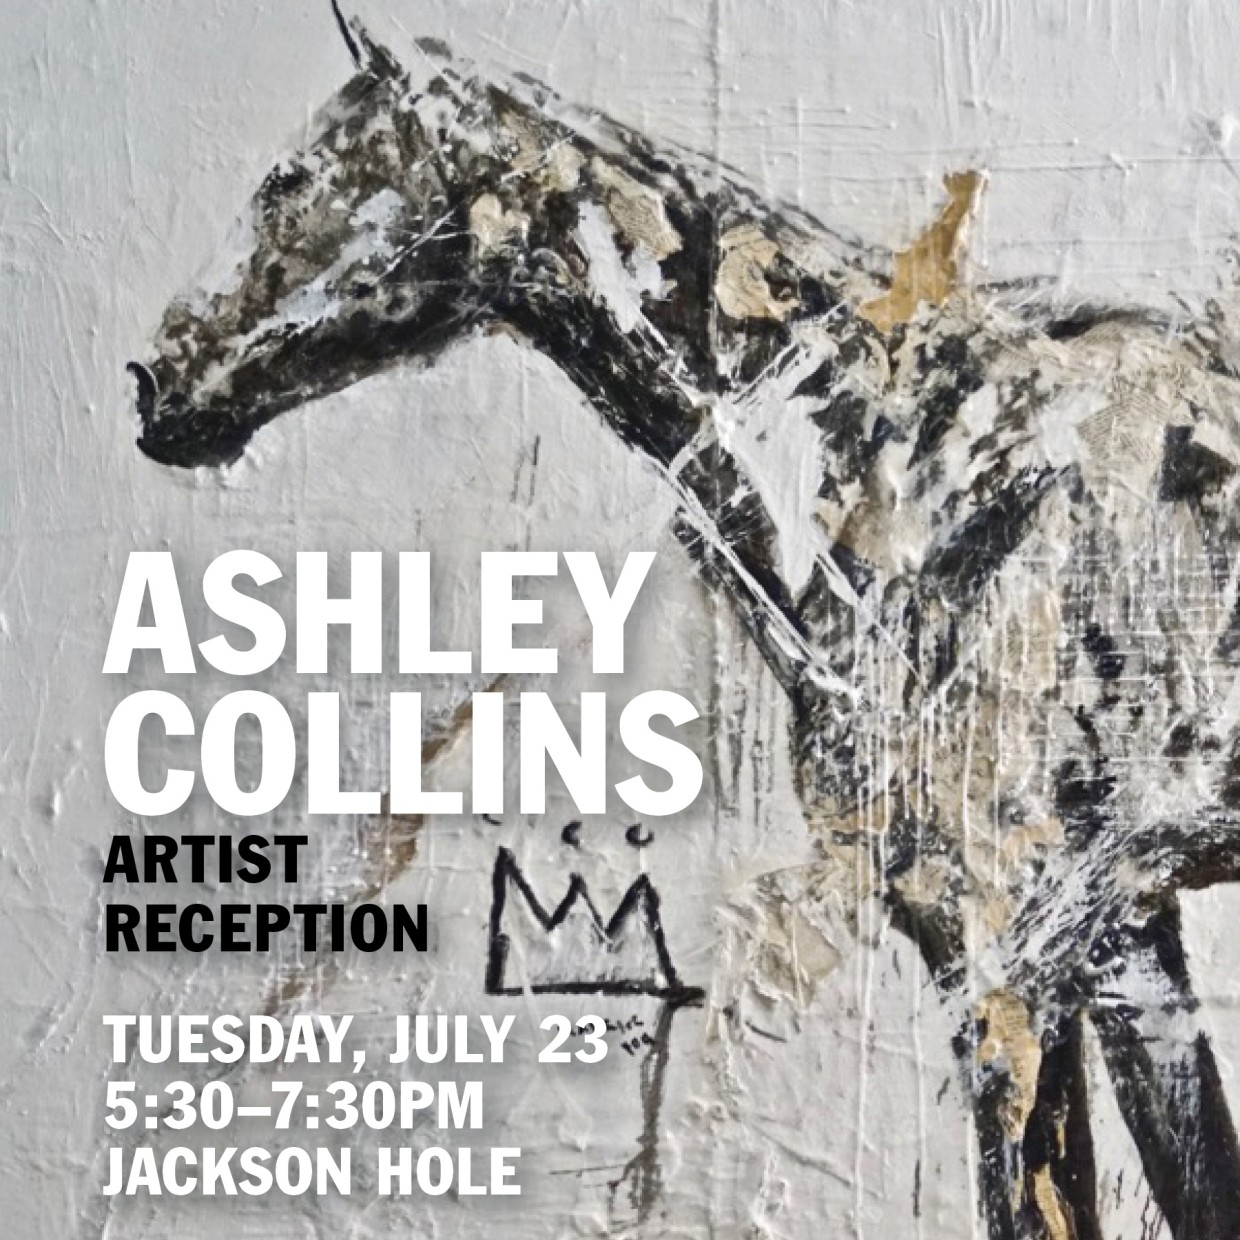 Ashley Collins Artist Reception